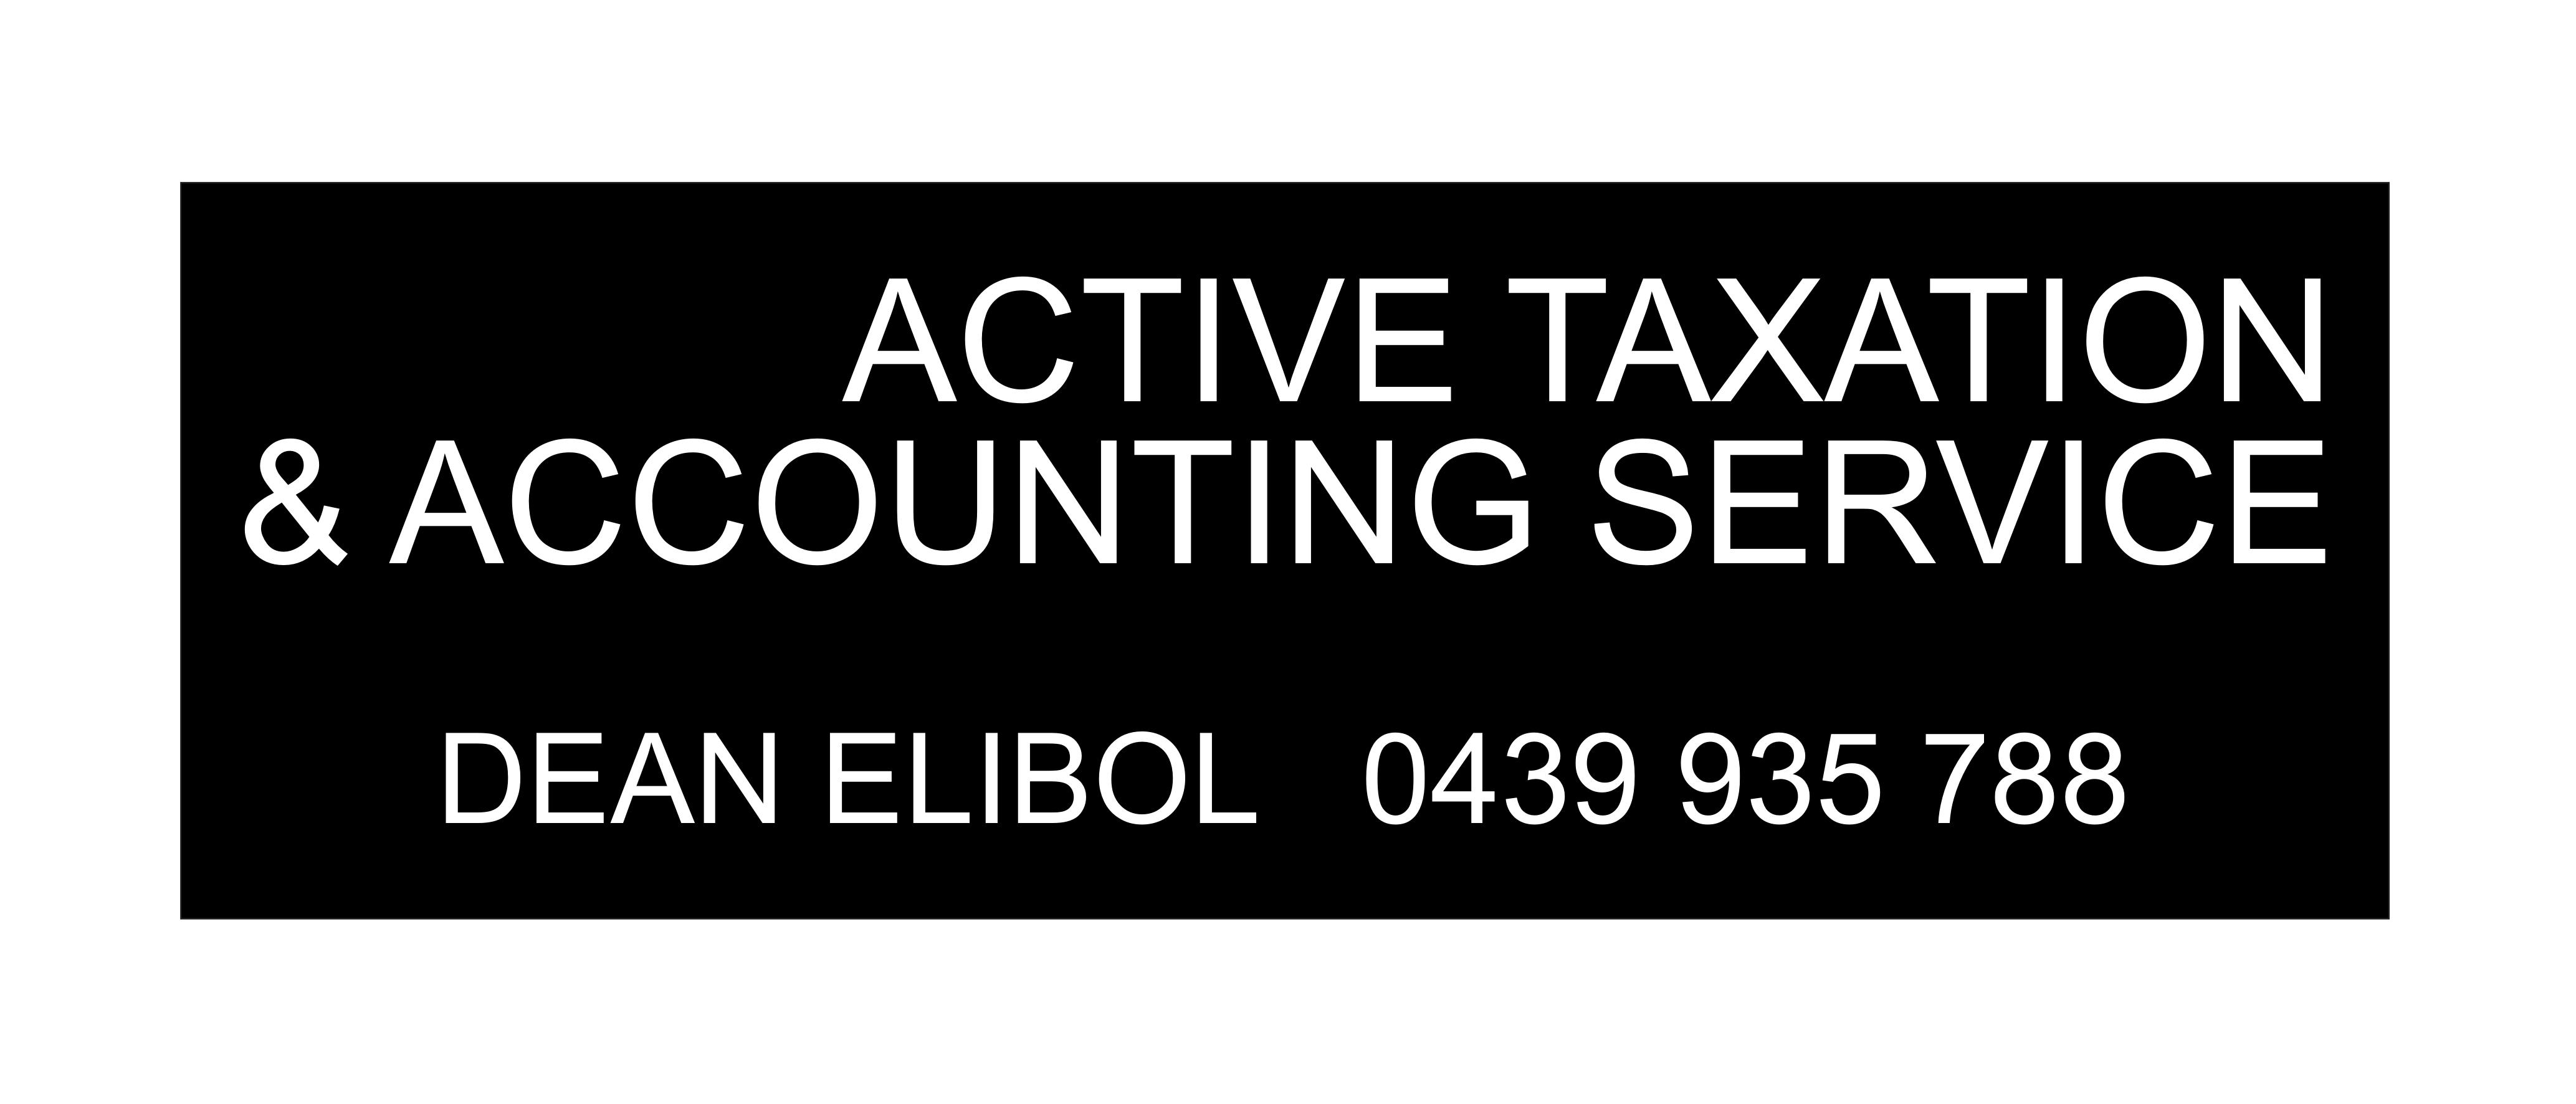 ACTIVE ACCOUNTING AND TAXATION SERVICES